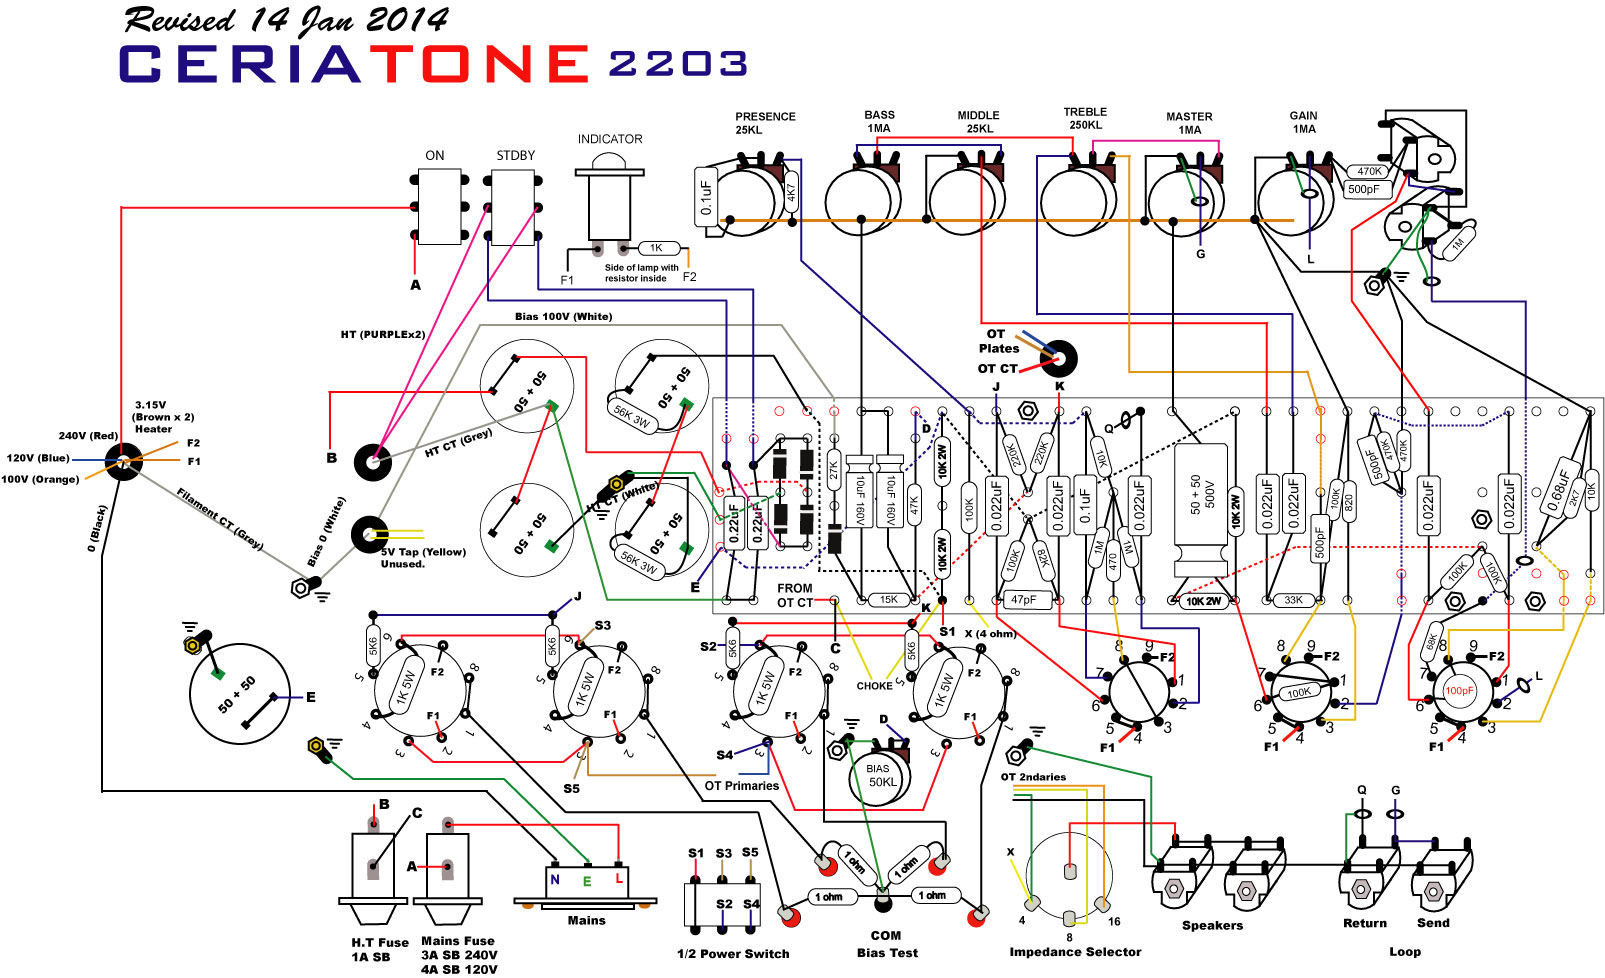 2203 ceriatoneusa manuals and layout diagrams Marshall 2204 Kit at n-0.co